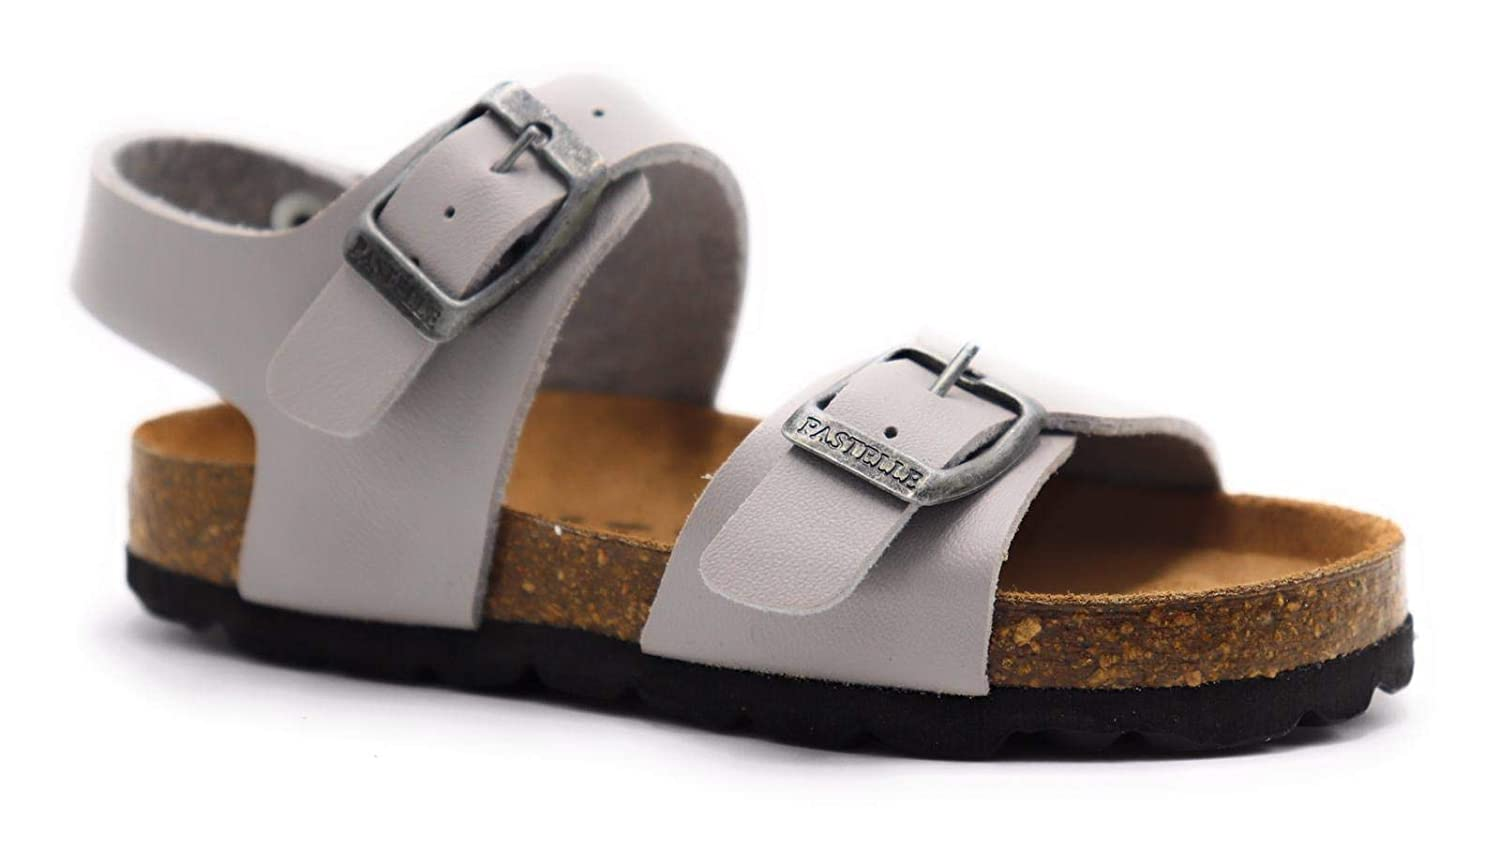 Pastelle by Patricia Elbaz Unisex Kids/' First Walking Shoes